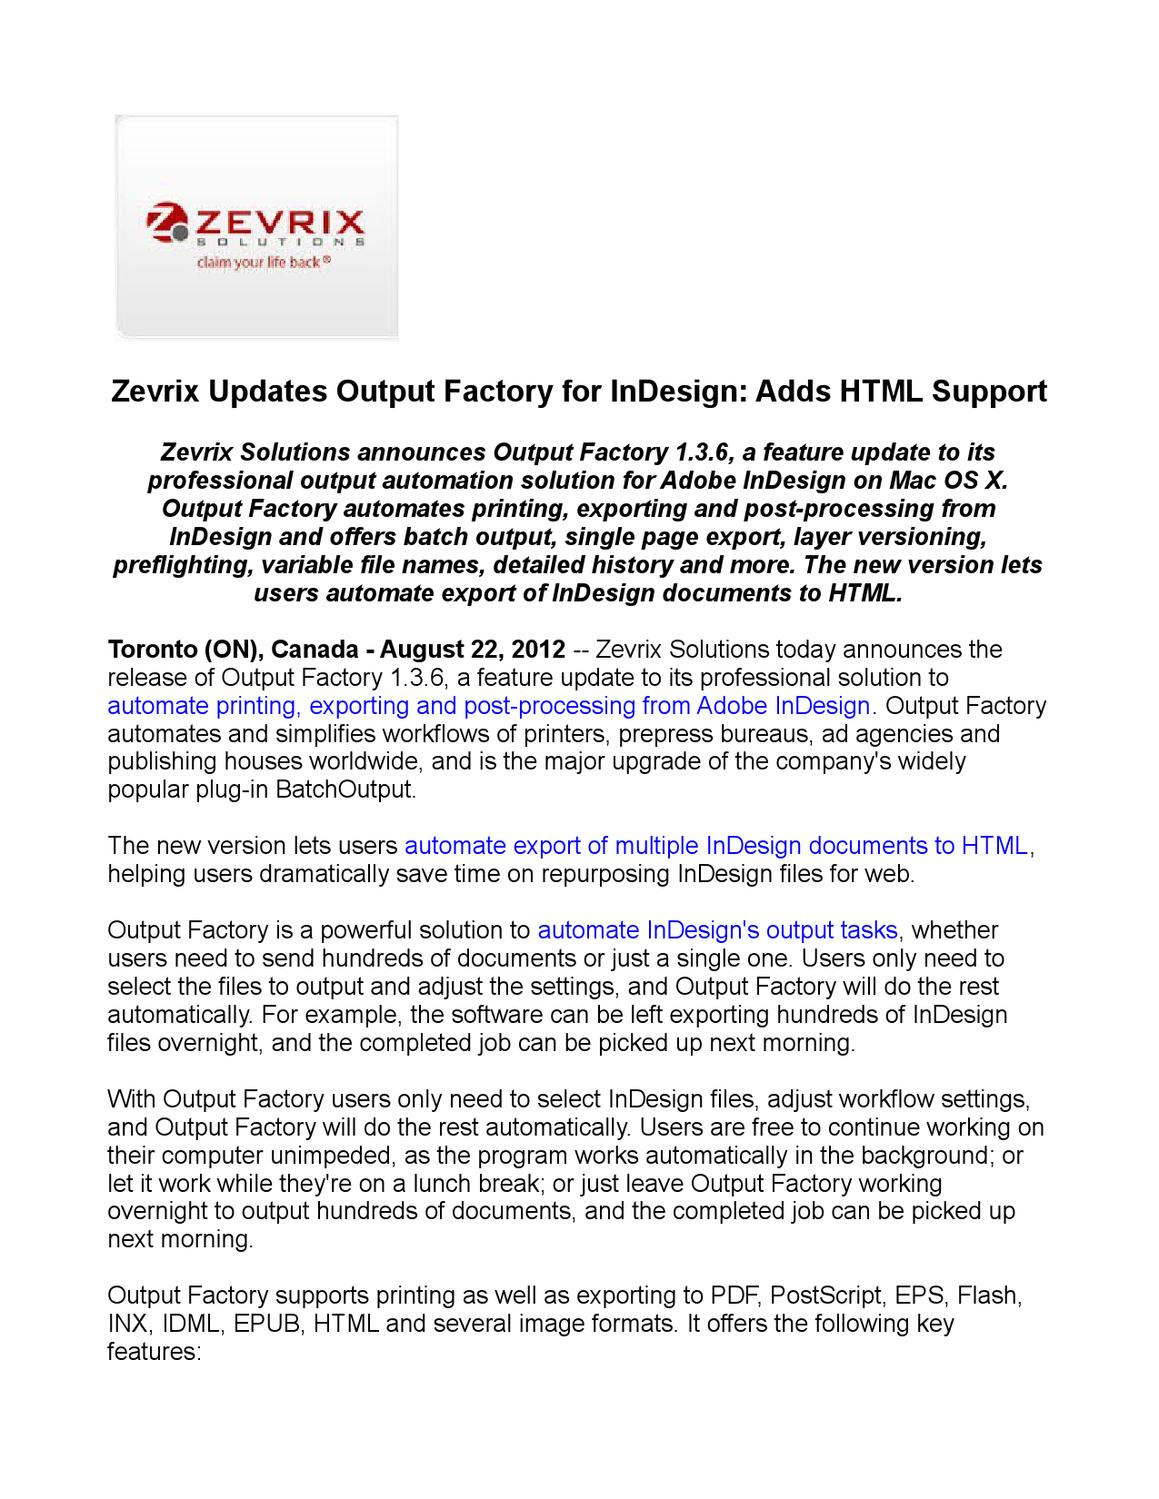 Zevrix Updates Output Factory for InDesign: Adds HTML